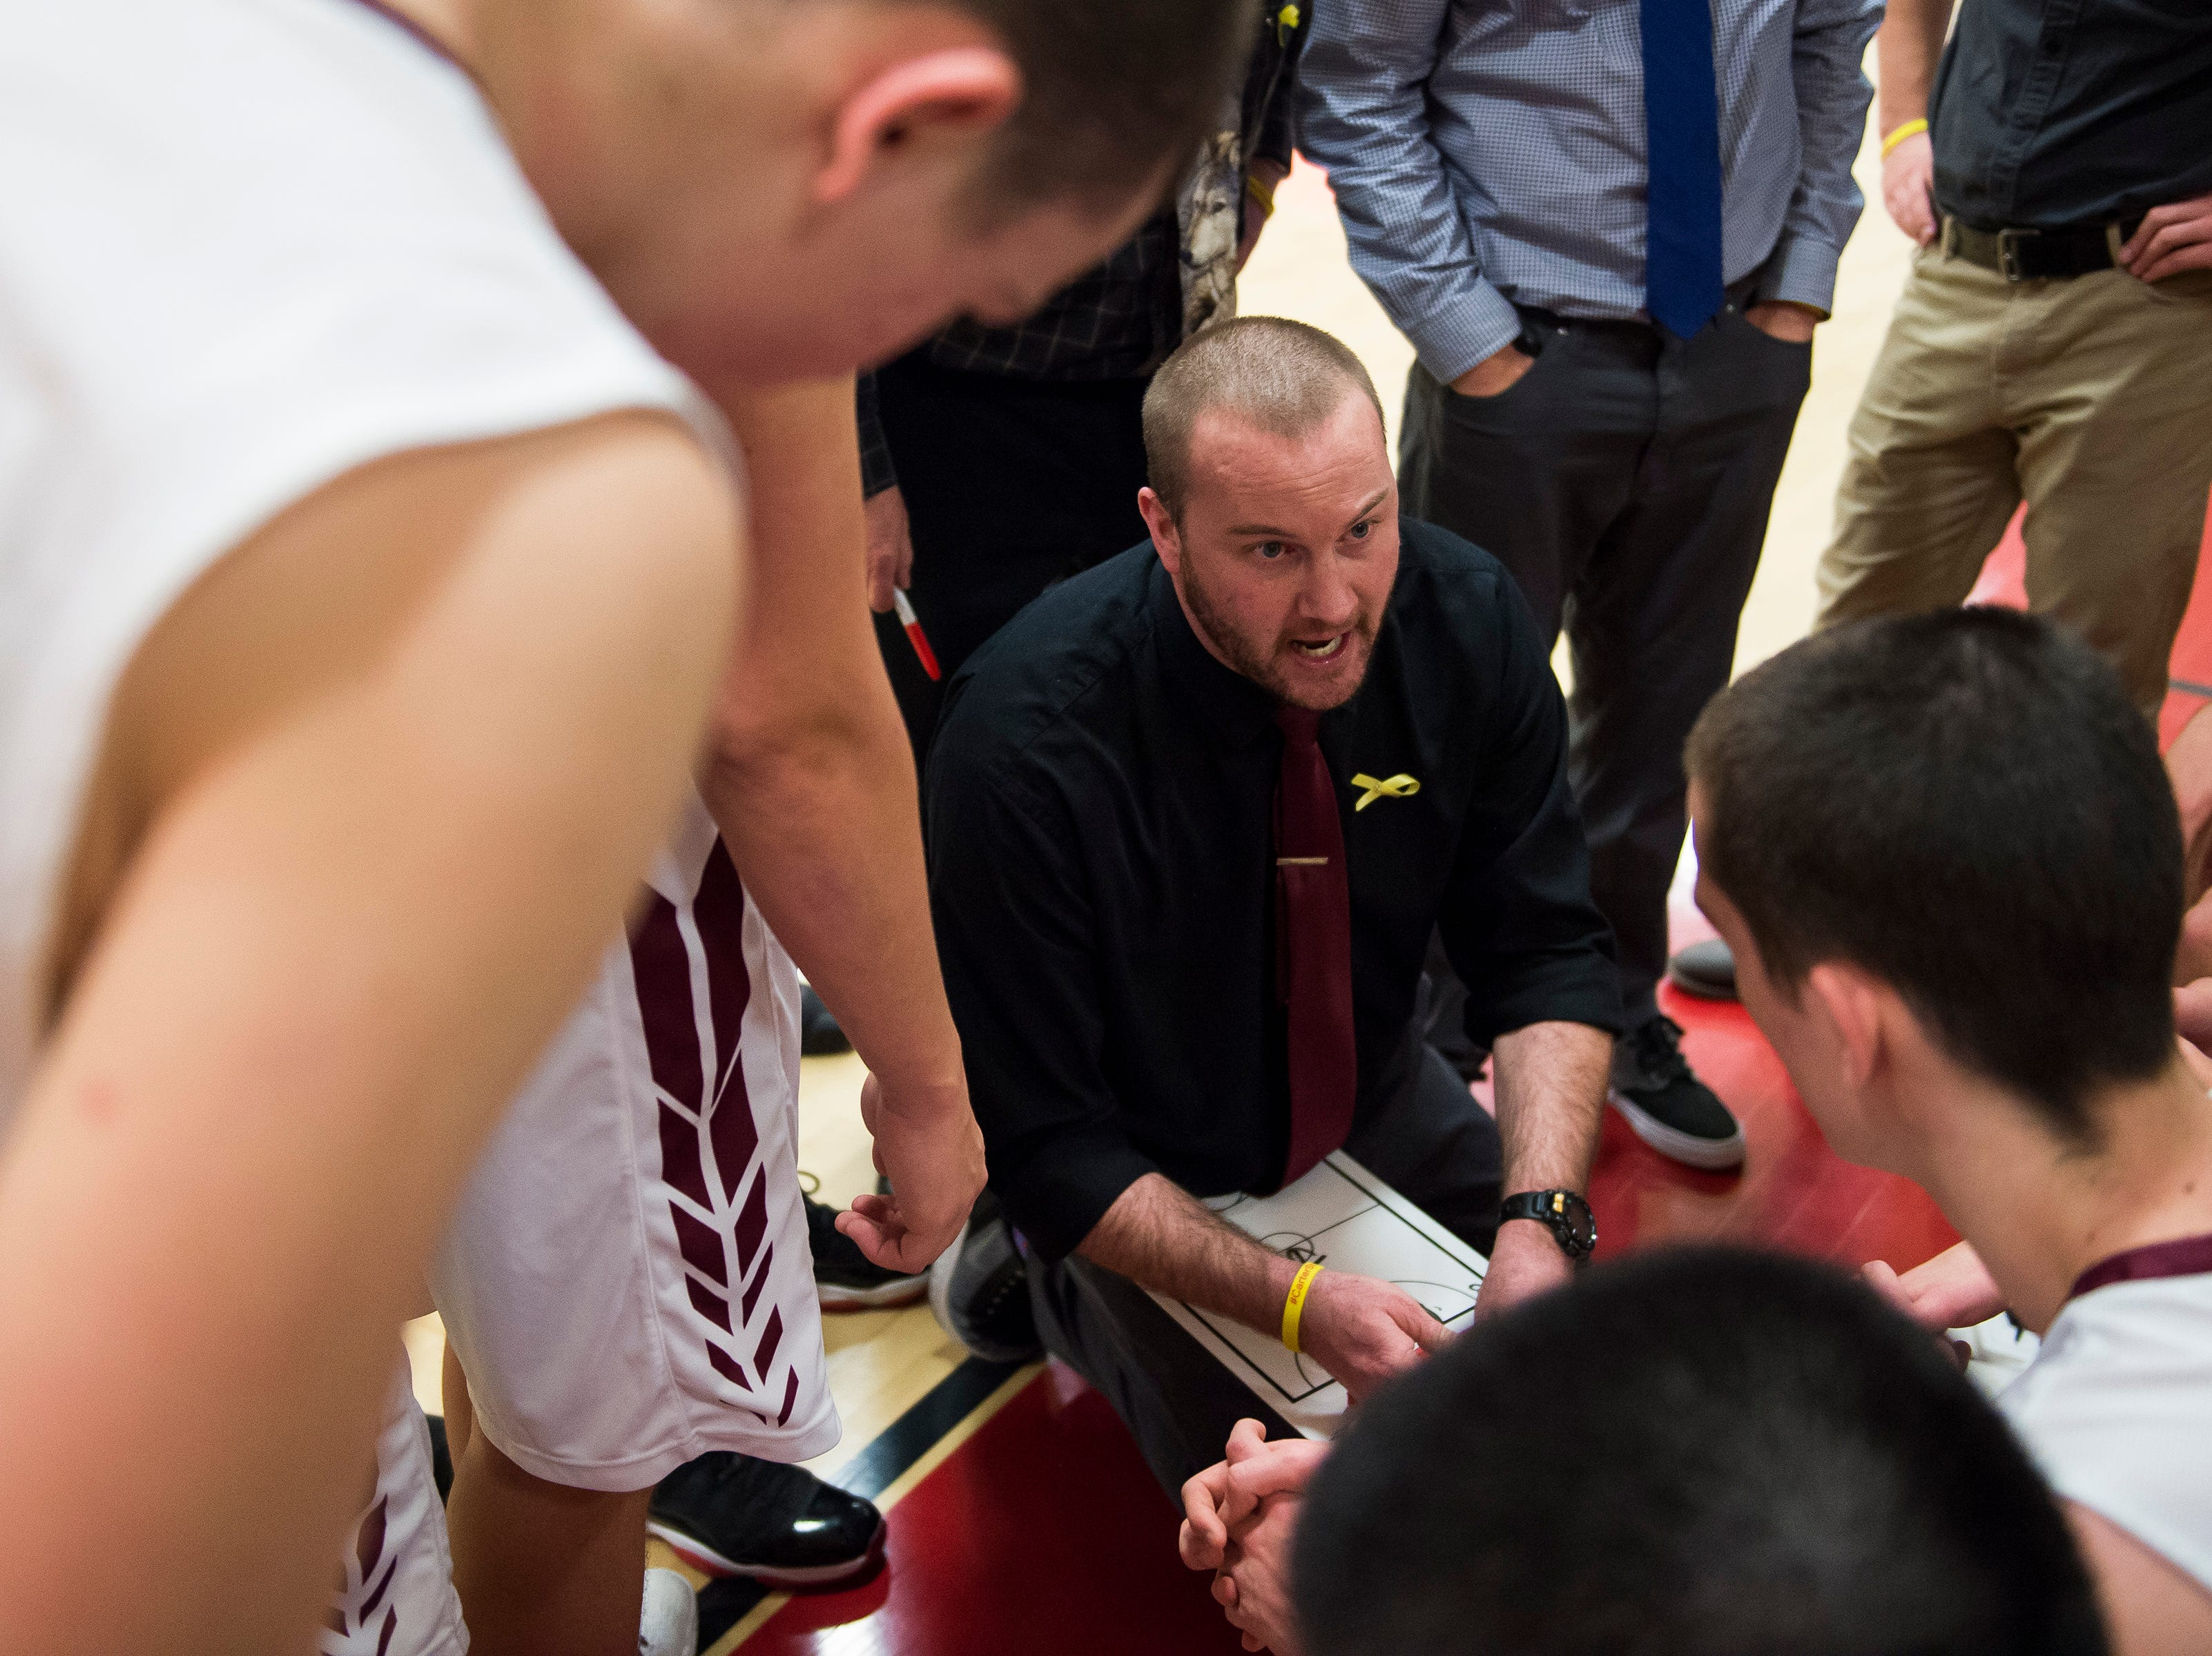 Rocky Mountain High School head boys basketball coach Brian Tafel talks to his players during a time-out in a game against Fort Collins High School on Friday, Jan. 18, 2019, at Rocky Mountain High School in Fort Collins, Colo.